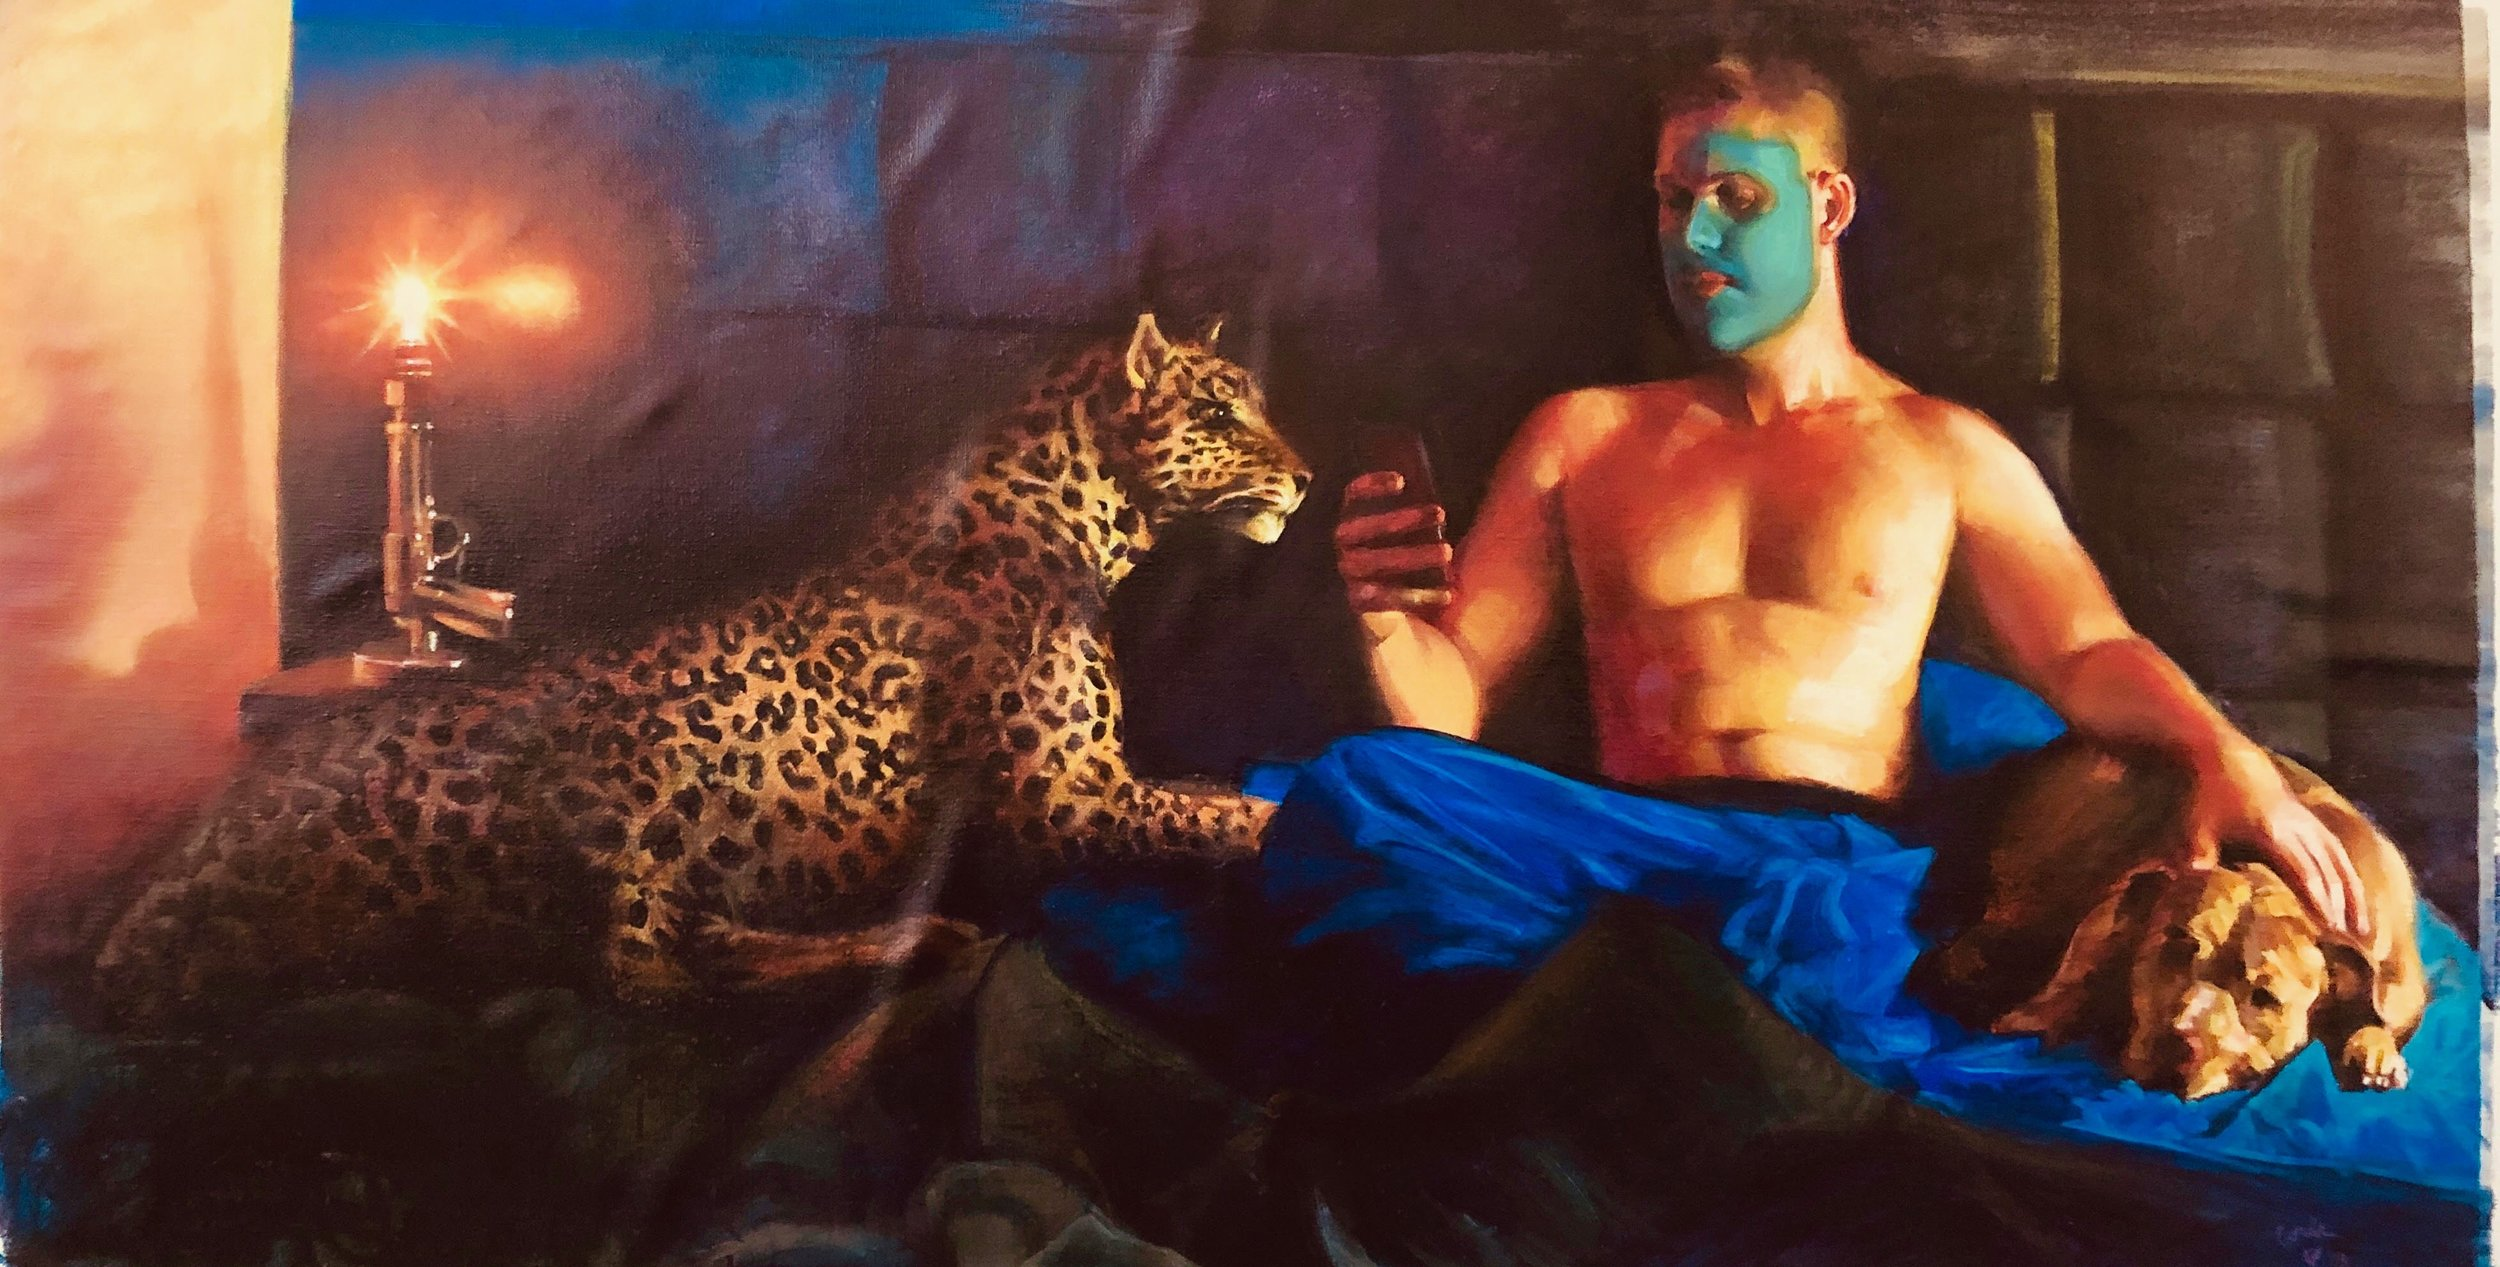 """Lair of the Beast"", cynda valle , oil on linen, 30x48 "", Portrait of my young millennial roommate during his weekly facial. All my love to Steven Parnell. Dog is real, cat is stuffed (inherited from grandfather)"